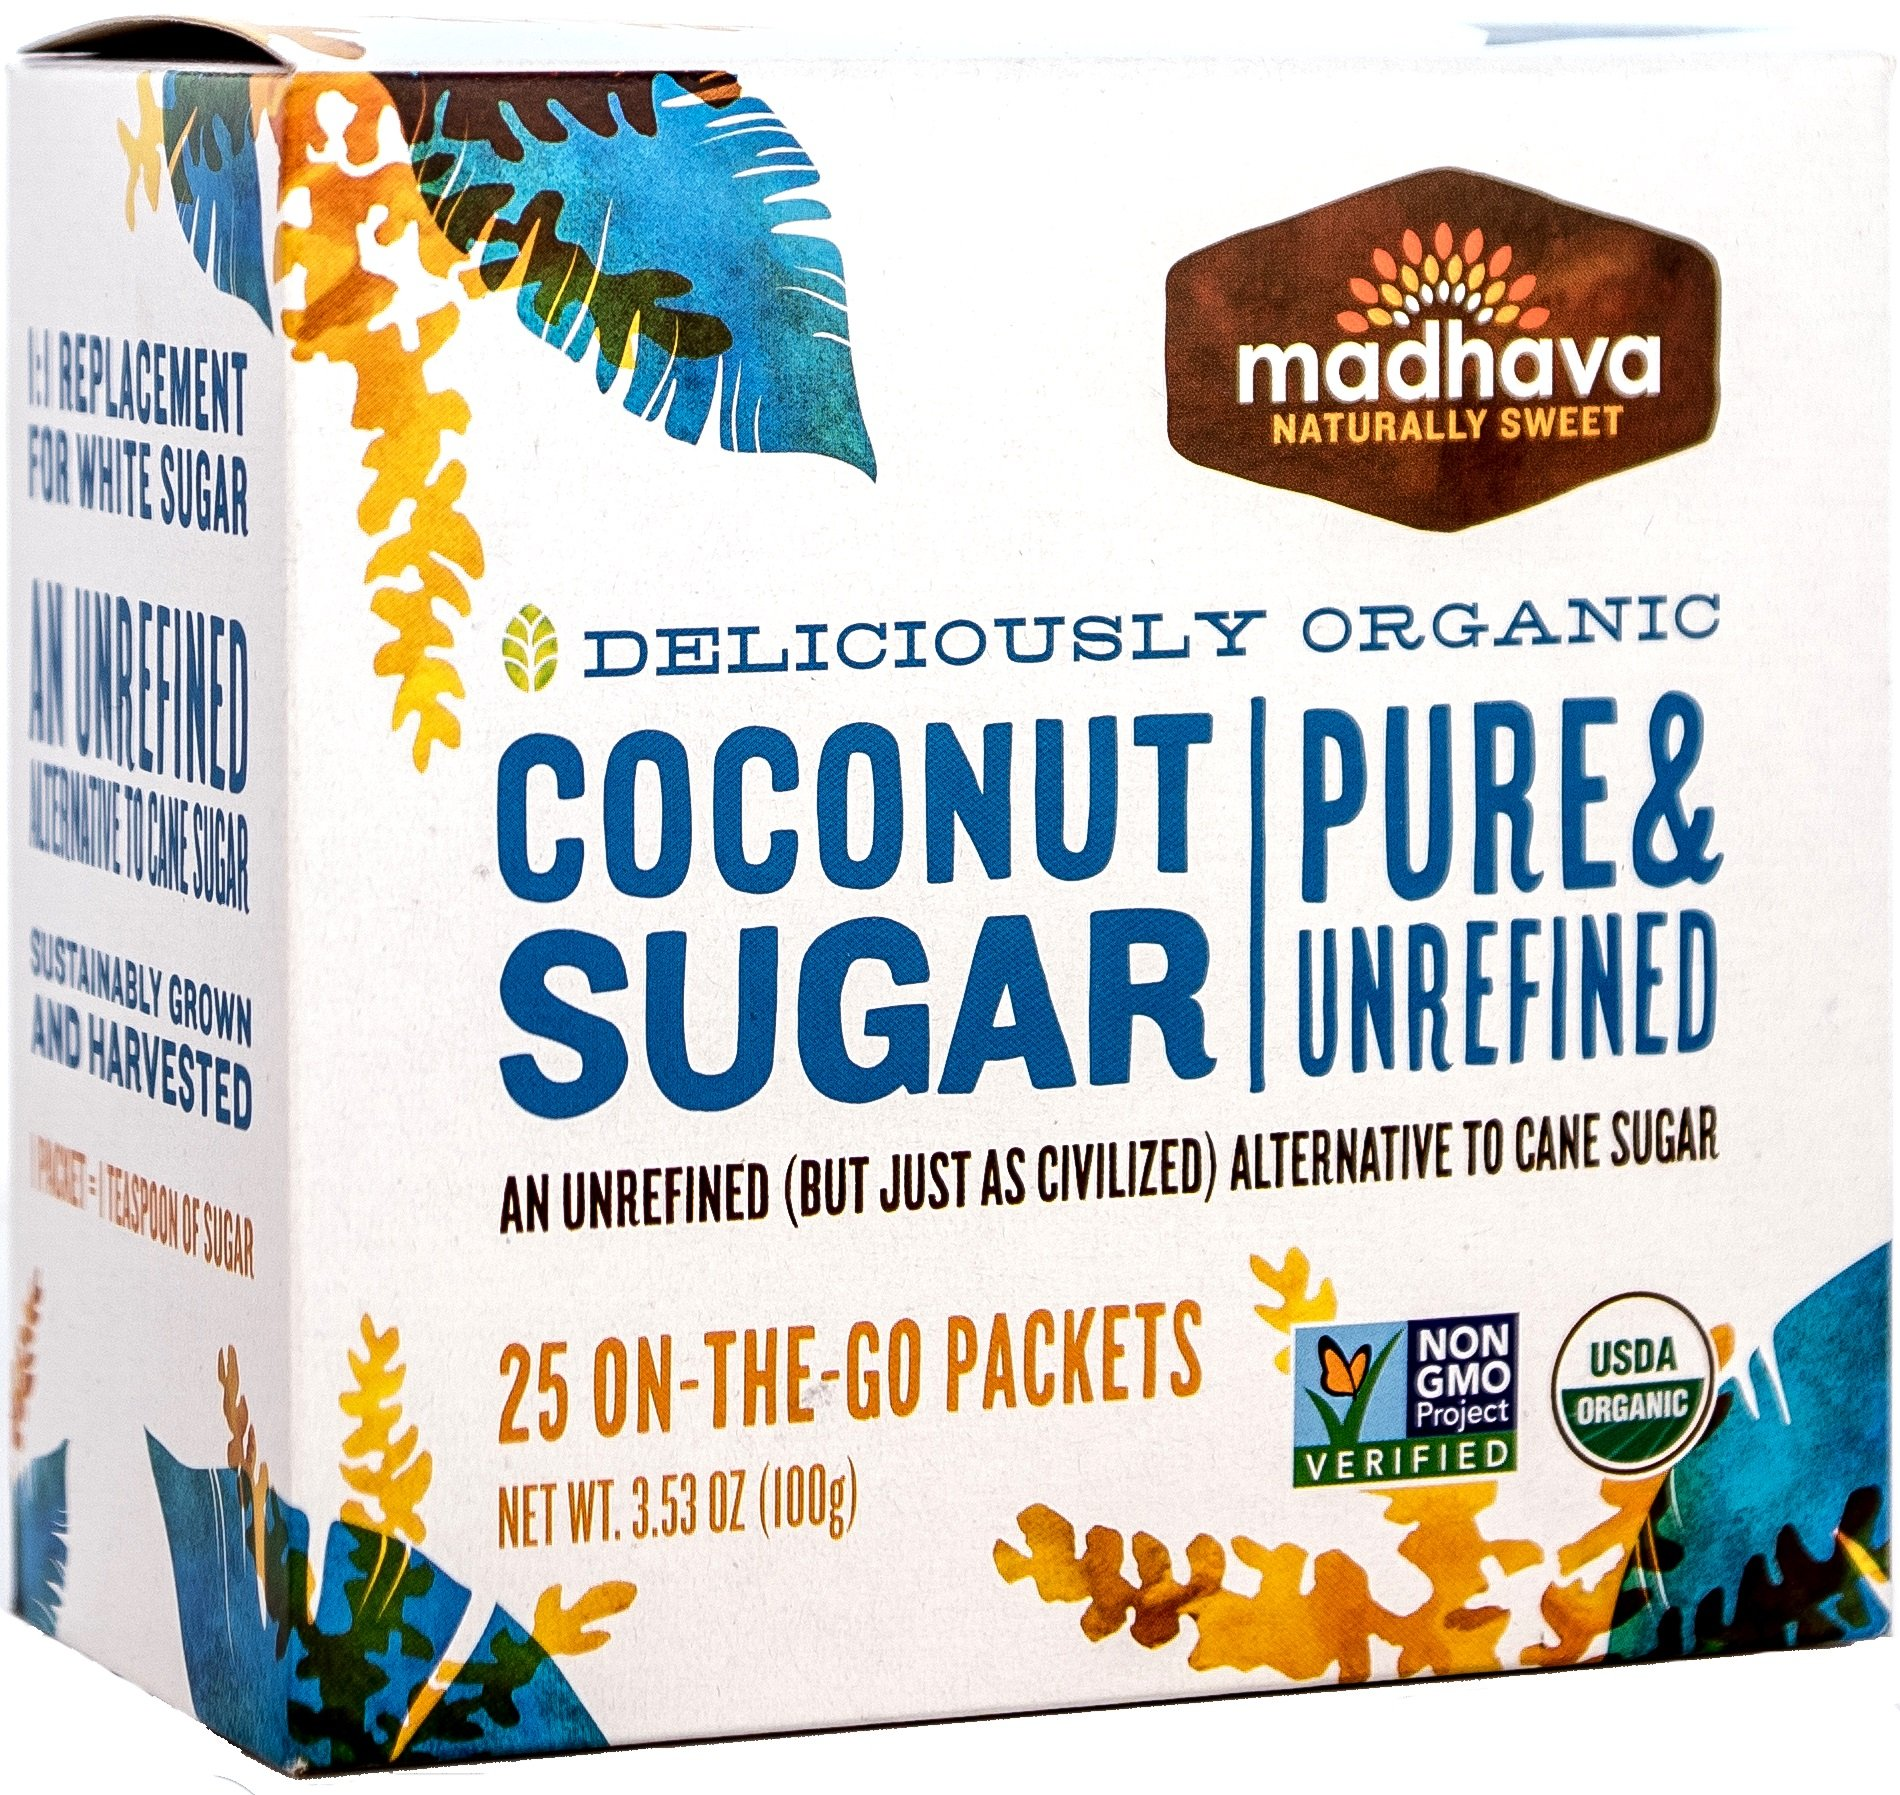 Madhava Naturally Sweet Organic Pure & Unrefined Coconut Sugar, 25 Single Serve Packets, 3.53 Ounce Box